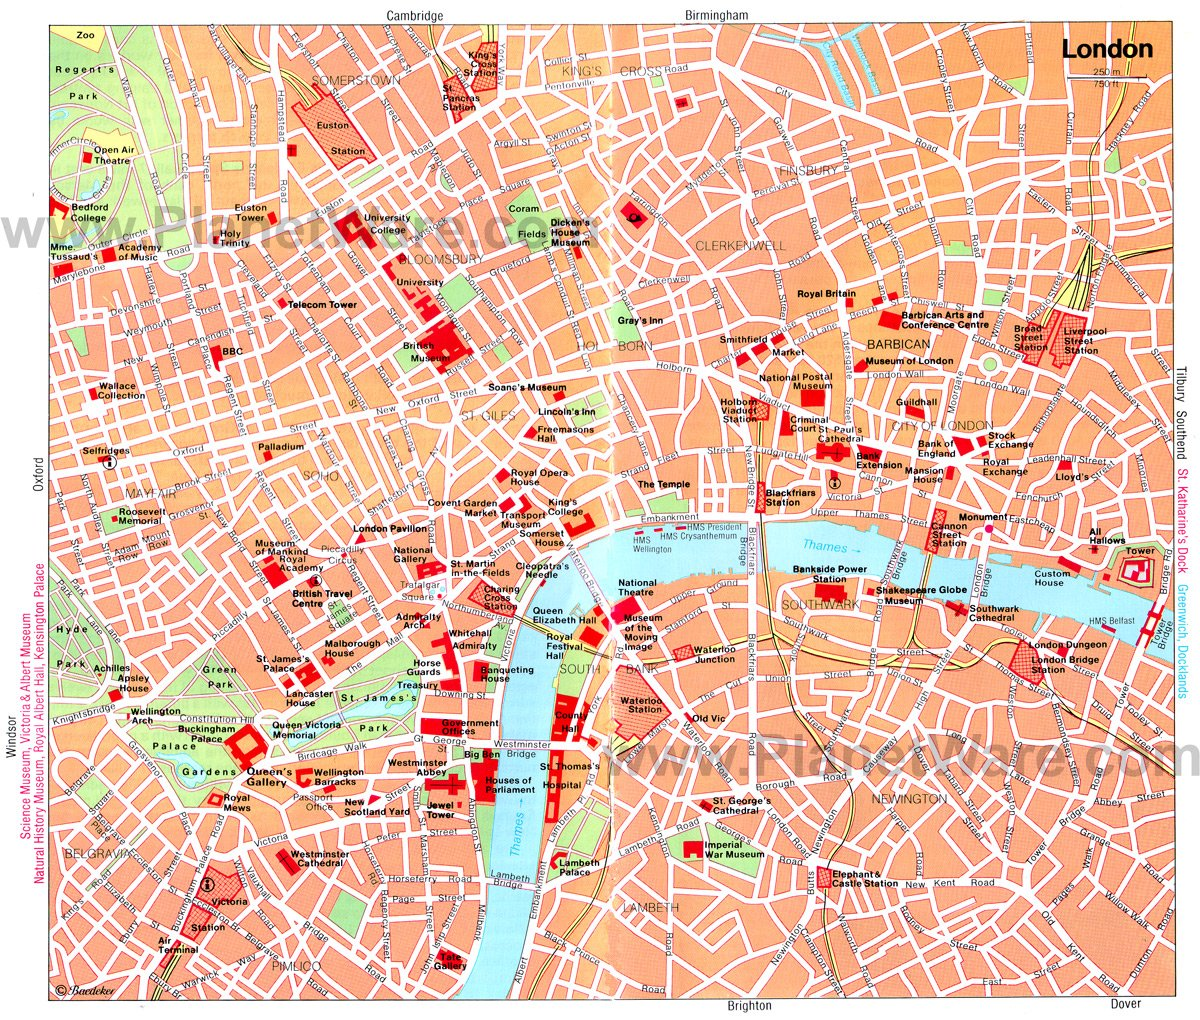 Central London Tourist Attractions Map.London Central Map With Tourist Attractions Tourism Company And